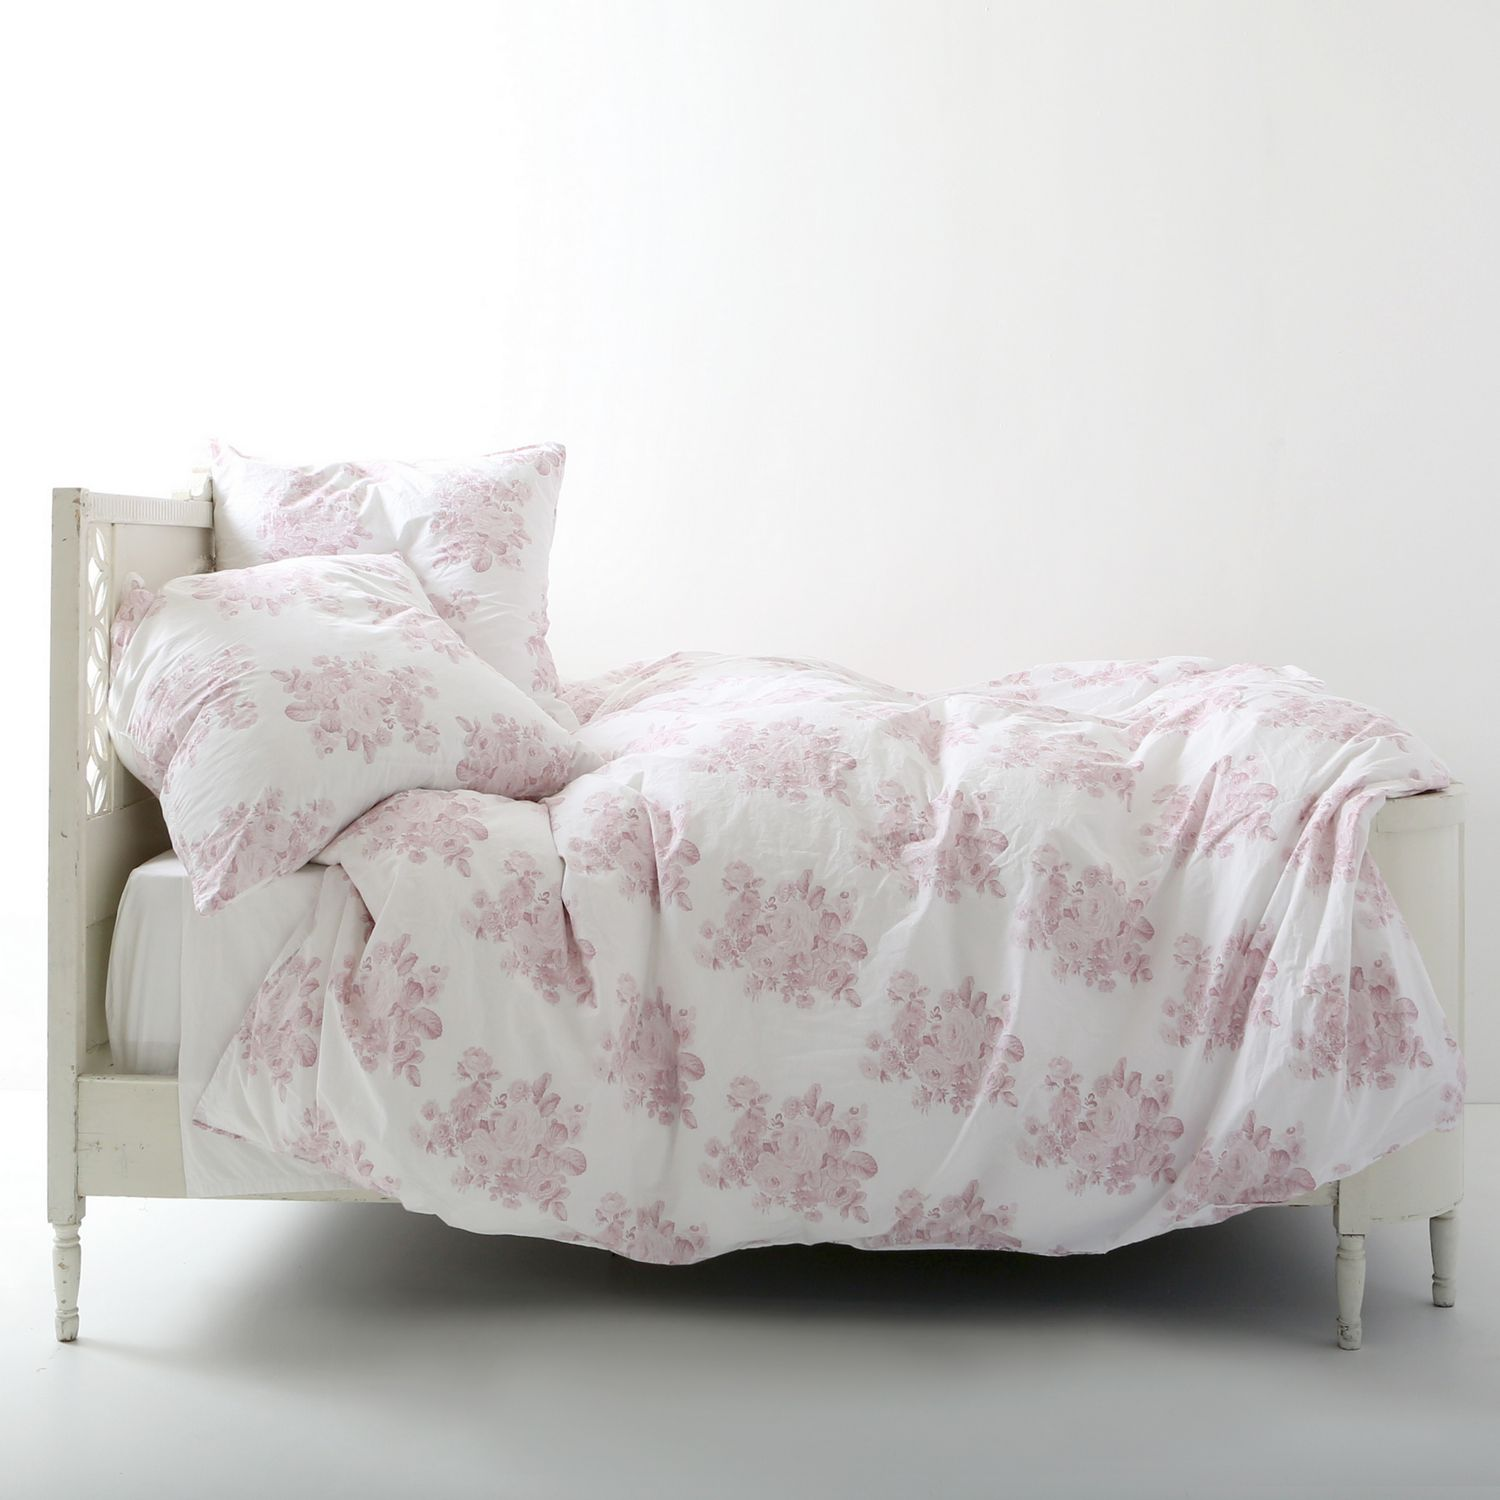 Pink Duvet Cover Rachel Ashwell Shadow Rose Bedding